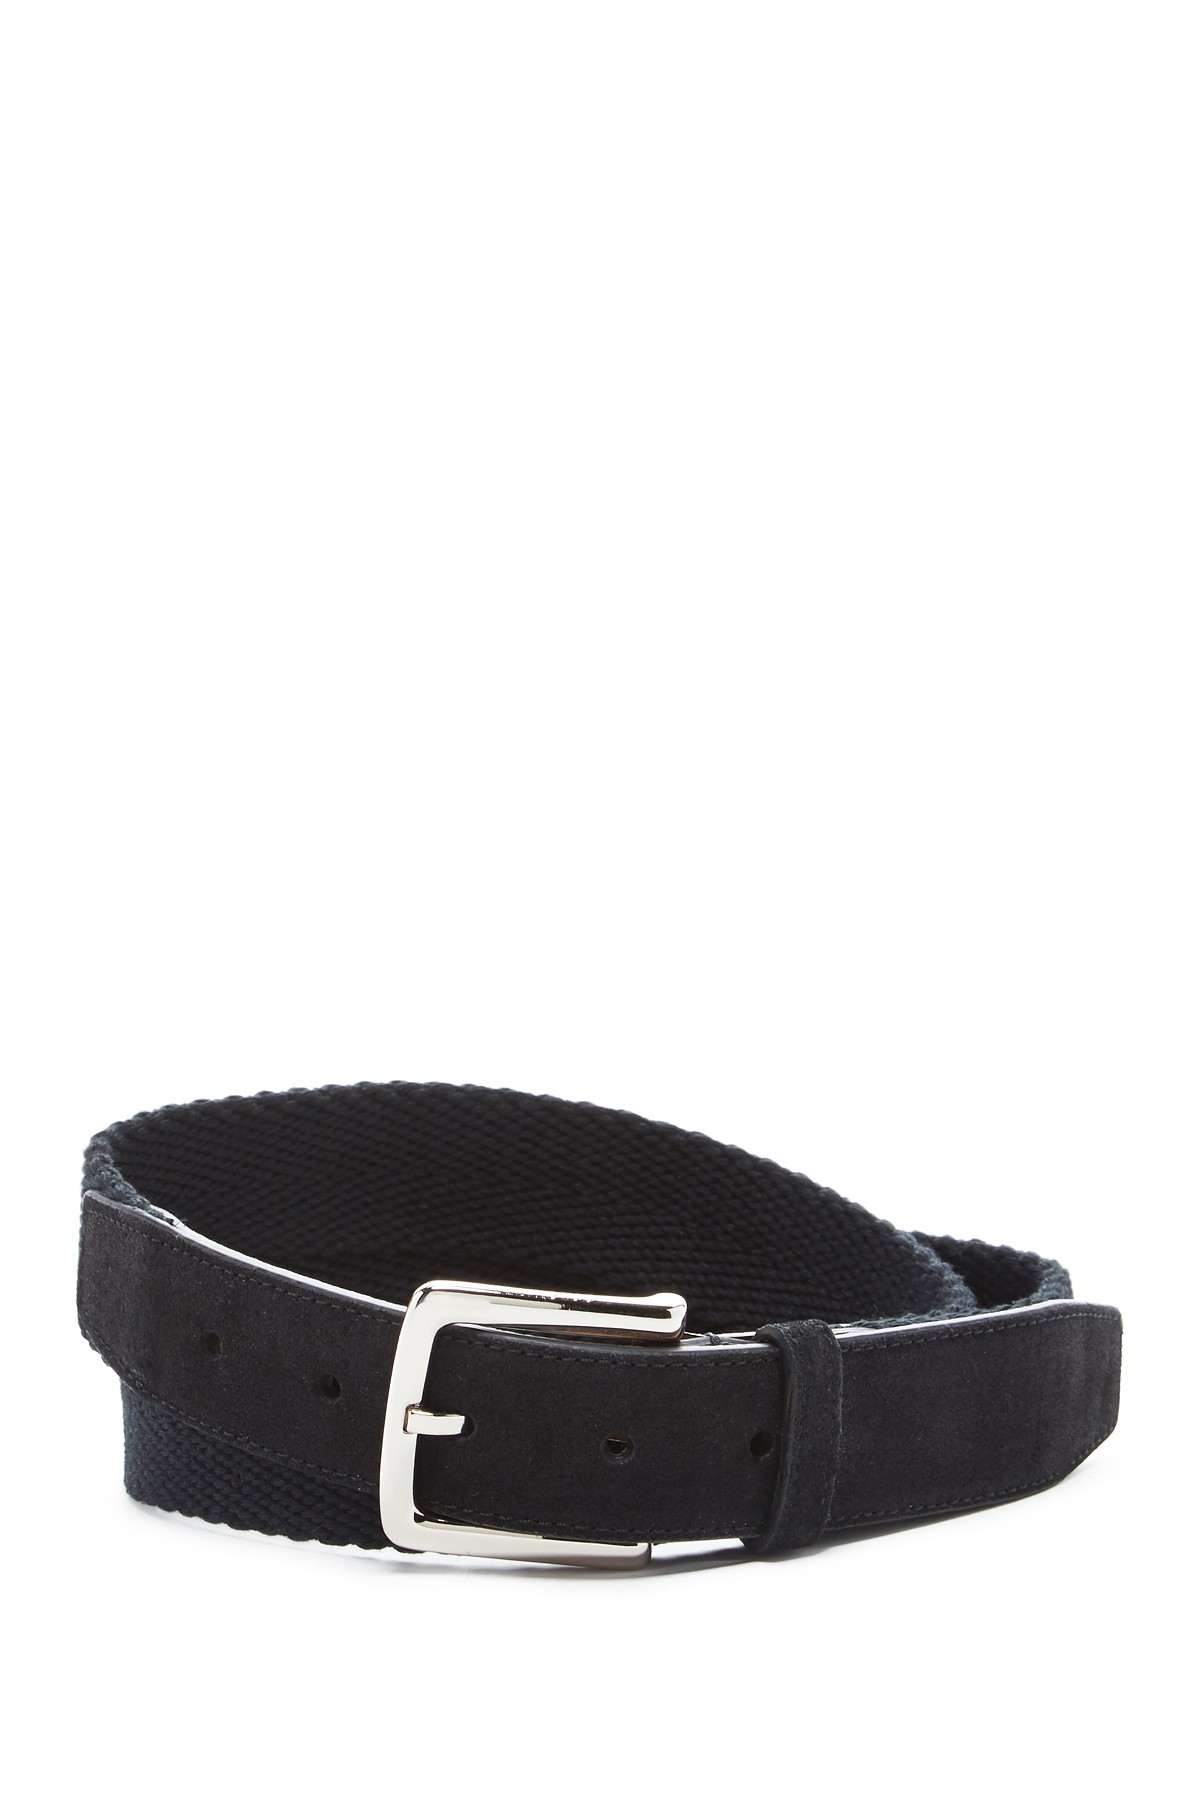 cole haan woven leather belt in black for lyst